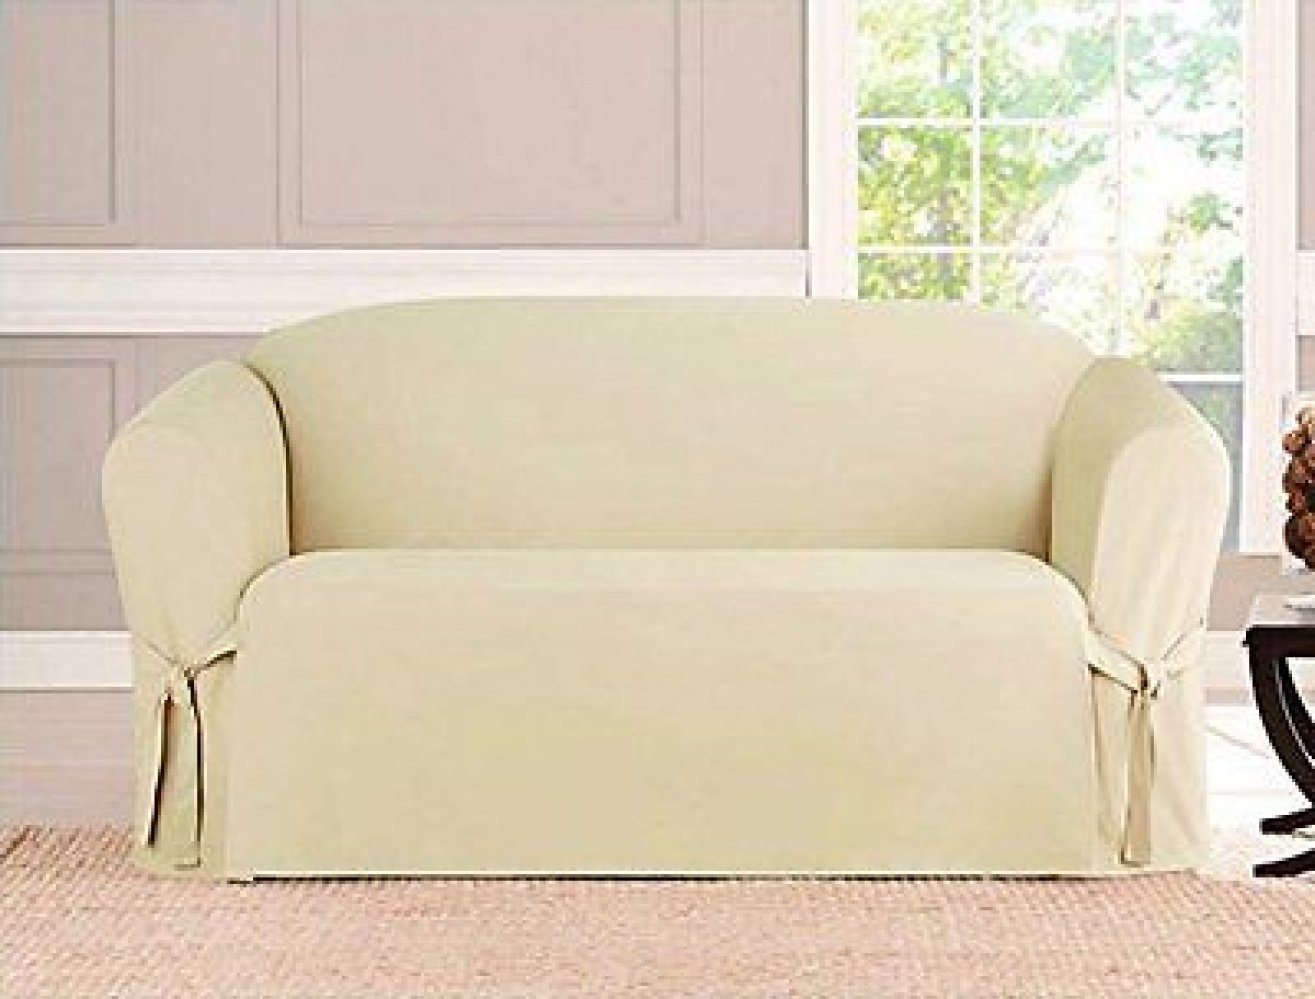 Terrific Buy Furniture Covers Reversible Sofa Protector Easy Fit Download Free Architecture Designs Viewormadebymaigaardcom